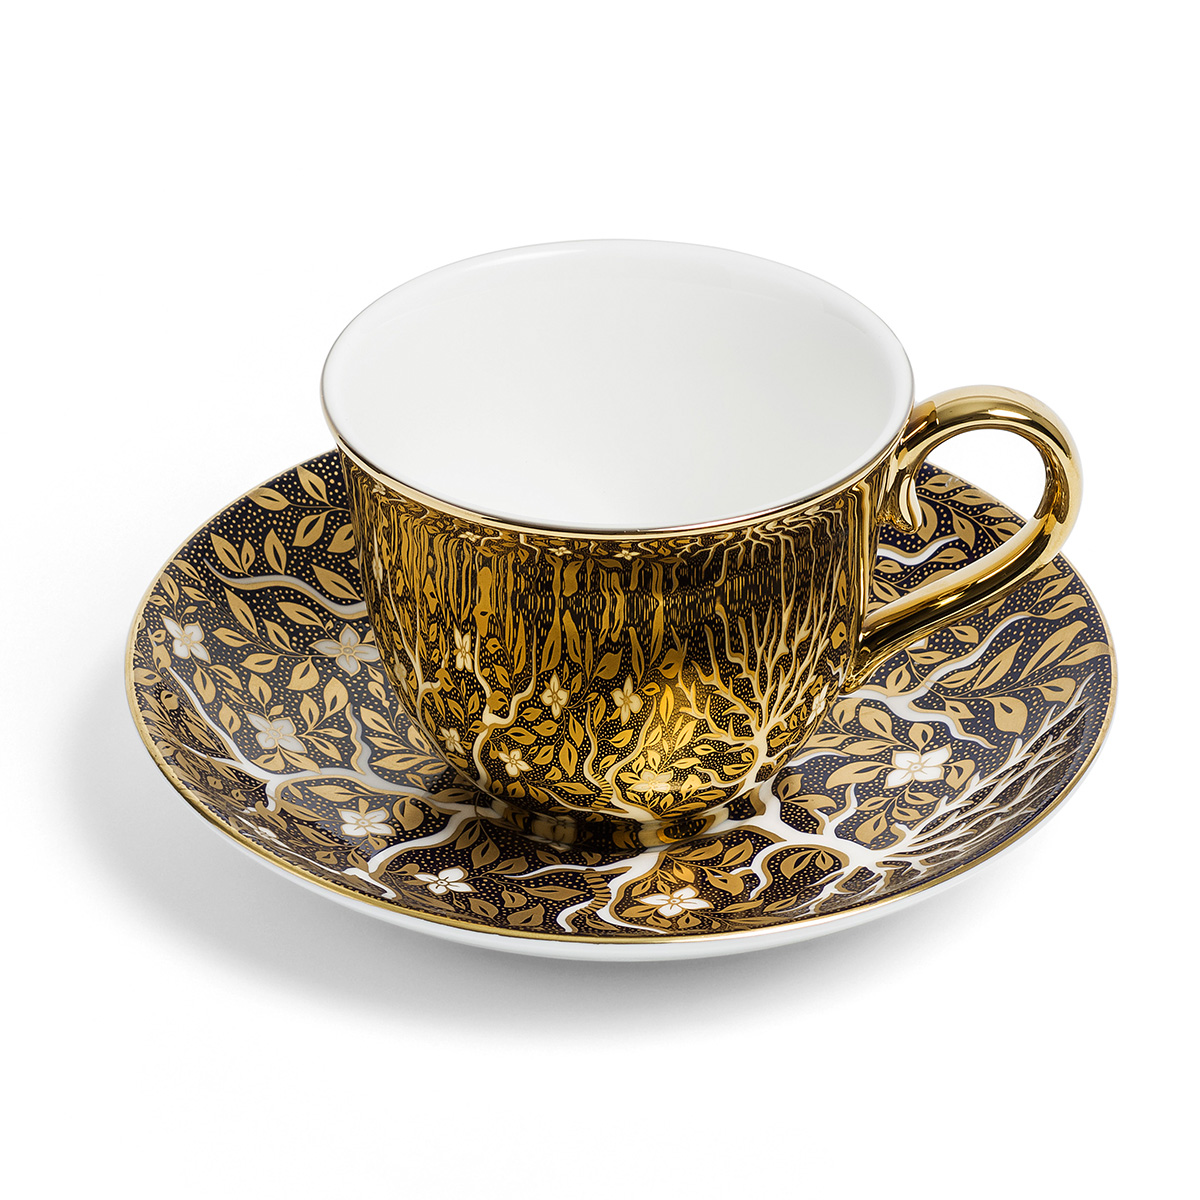 Tree of Life cup and saucer by Richard Brendon